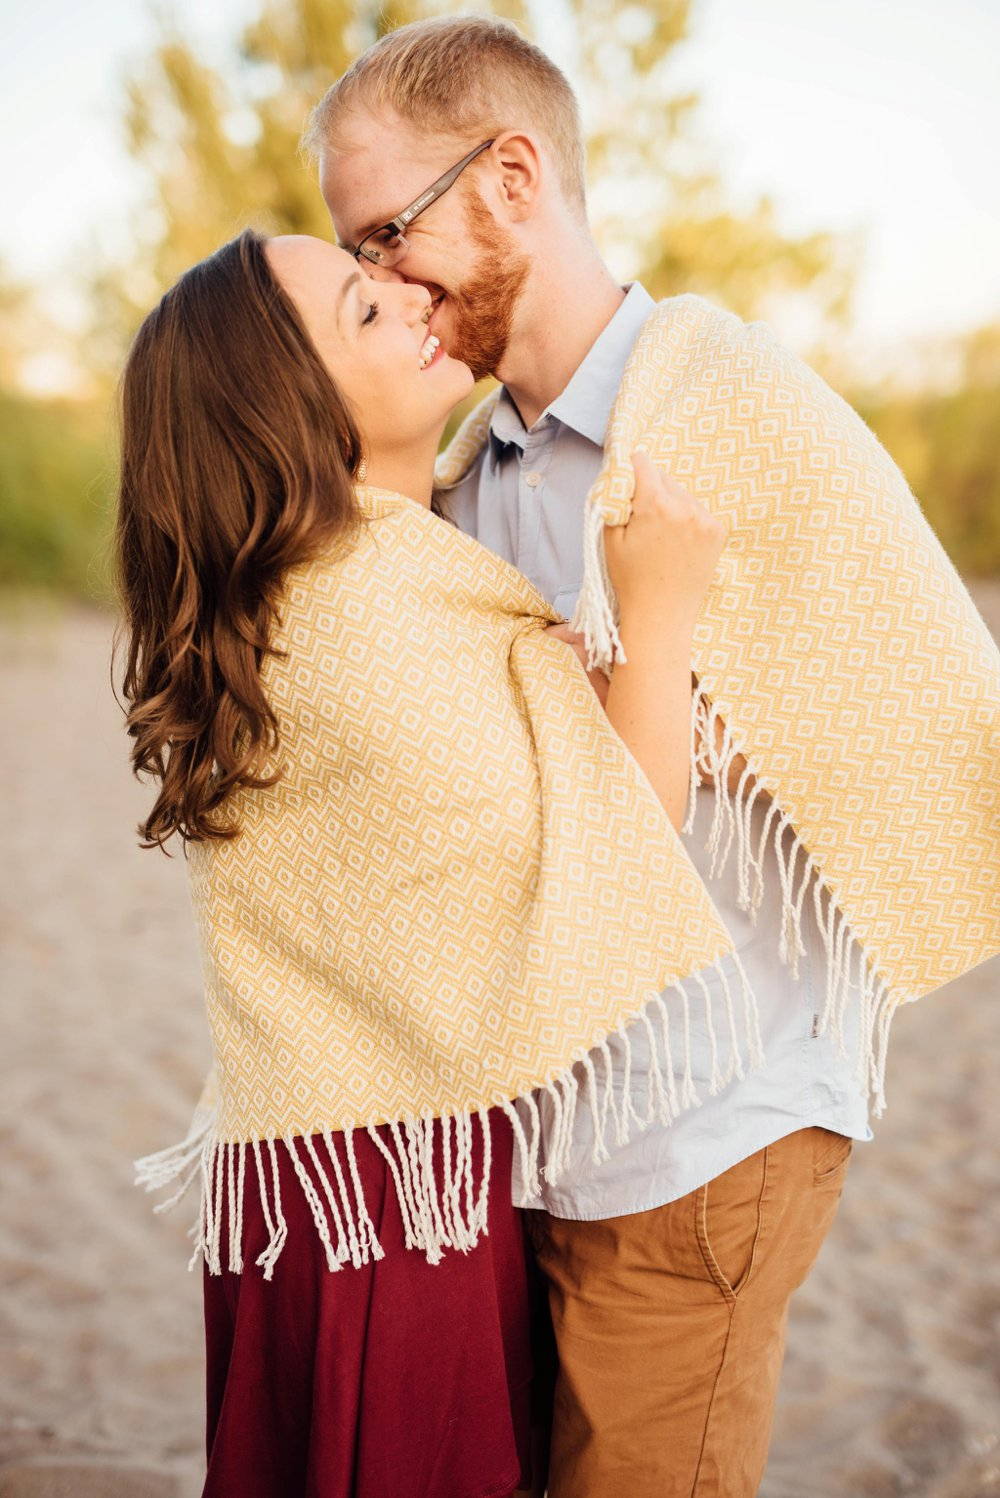 cozy blanket engagement photos | Olive Photography Toronto